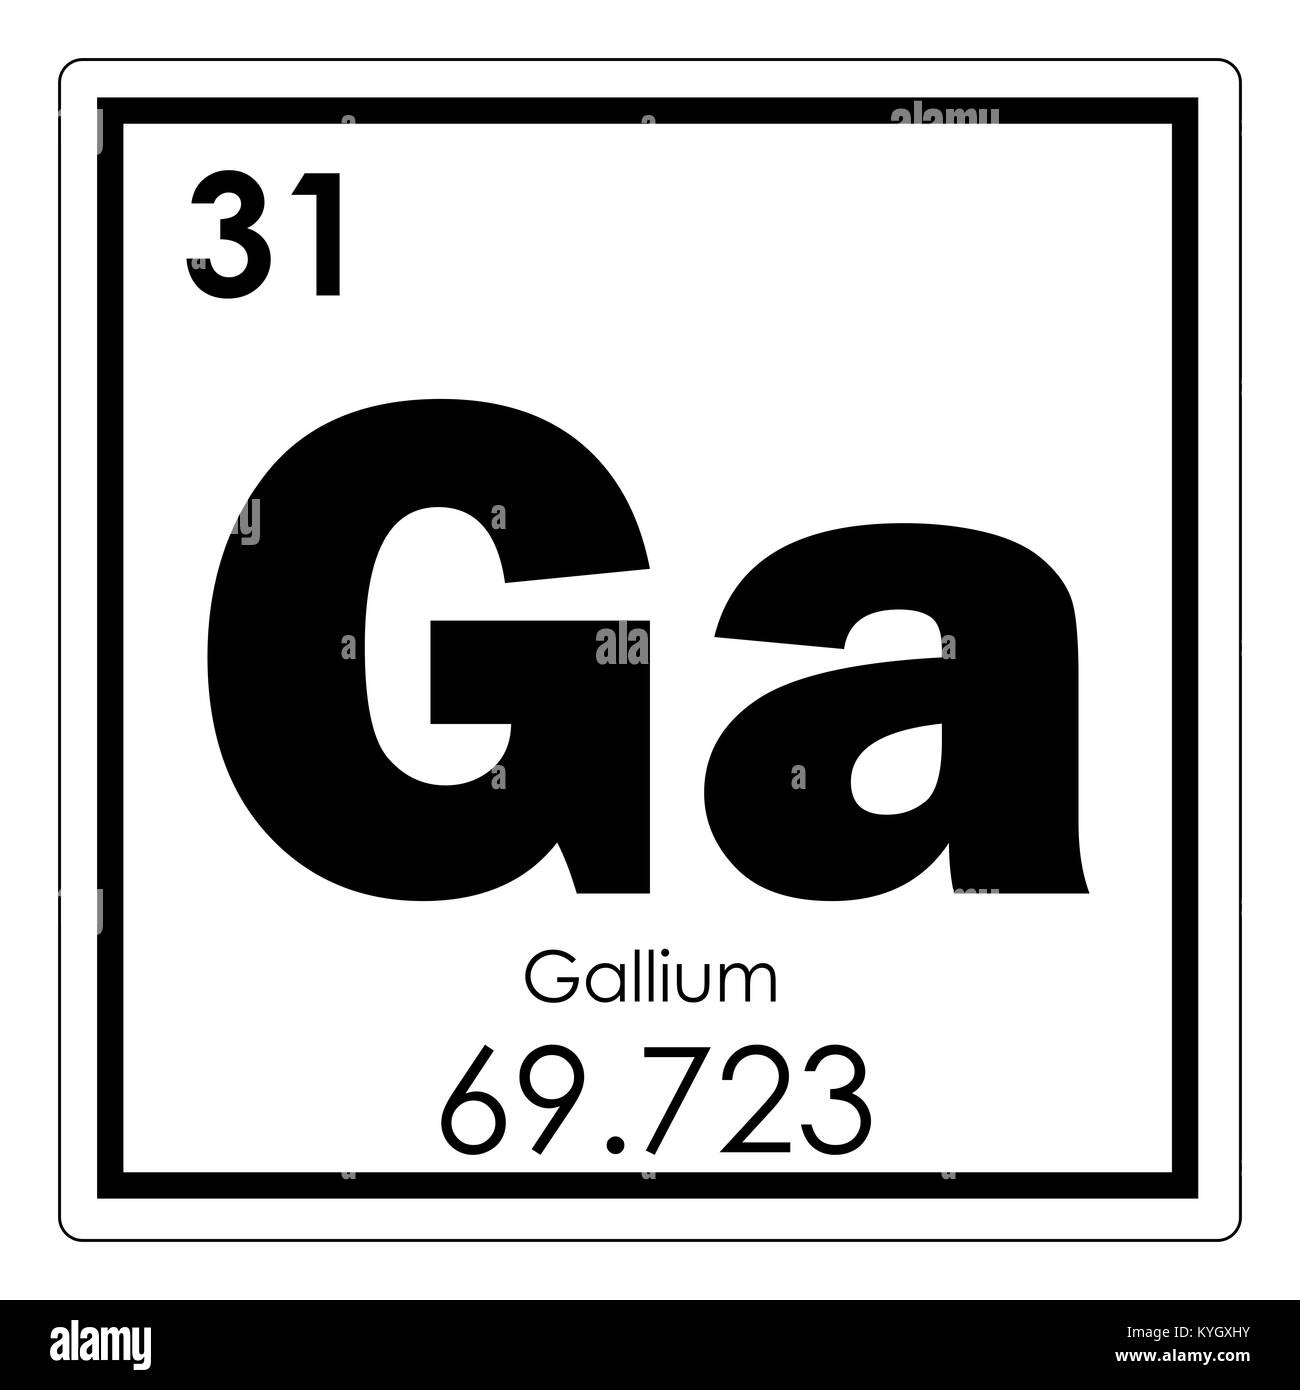 Symbol for gallium image collections symbol and sign ideas gallium chemical element periodic table science symbol stock photo gallium chemical element periodic table science symbol buycottarizona